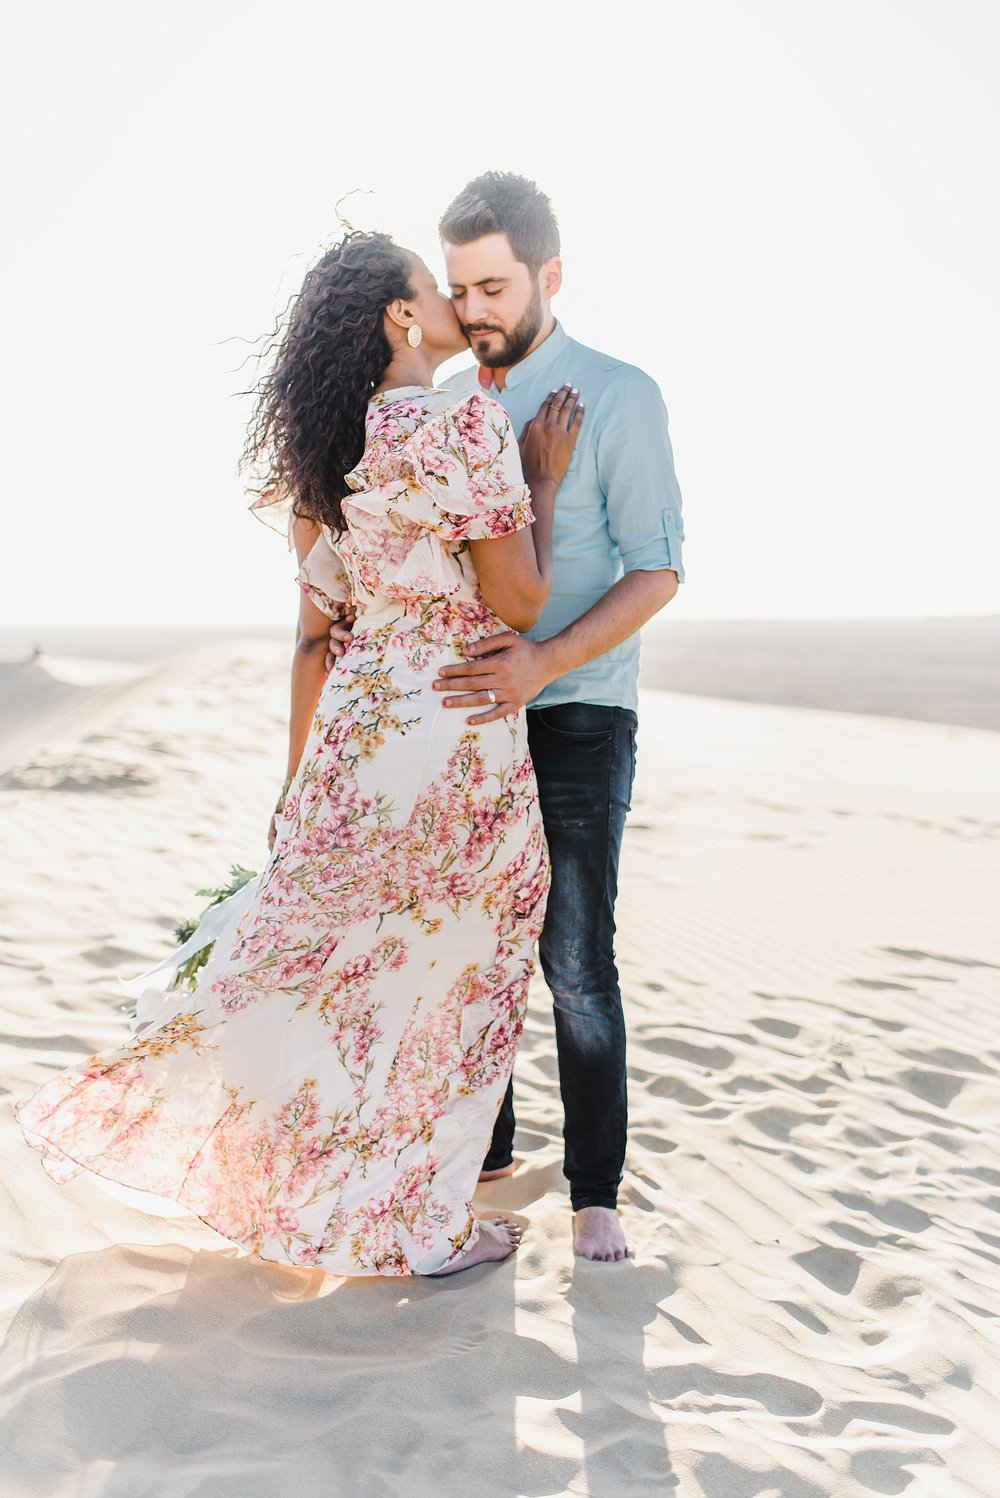 Singing Sand Dunes Desert Love Shoot | Ali and Batoul Photography_0024.jpg